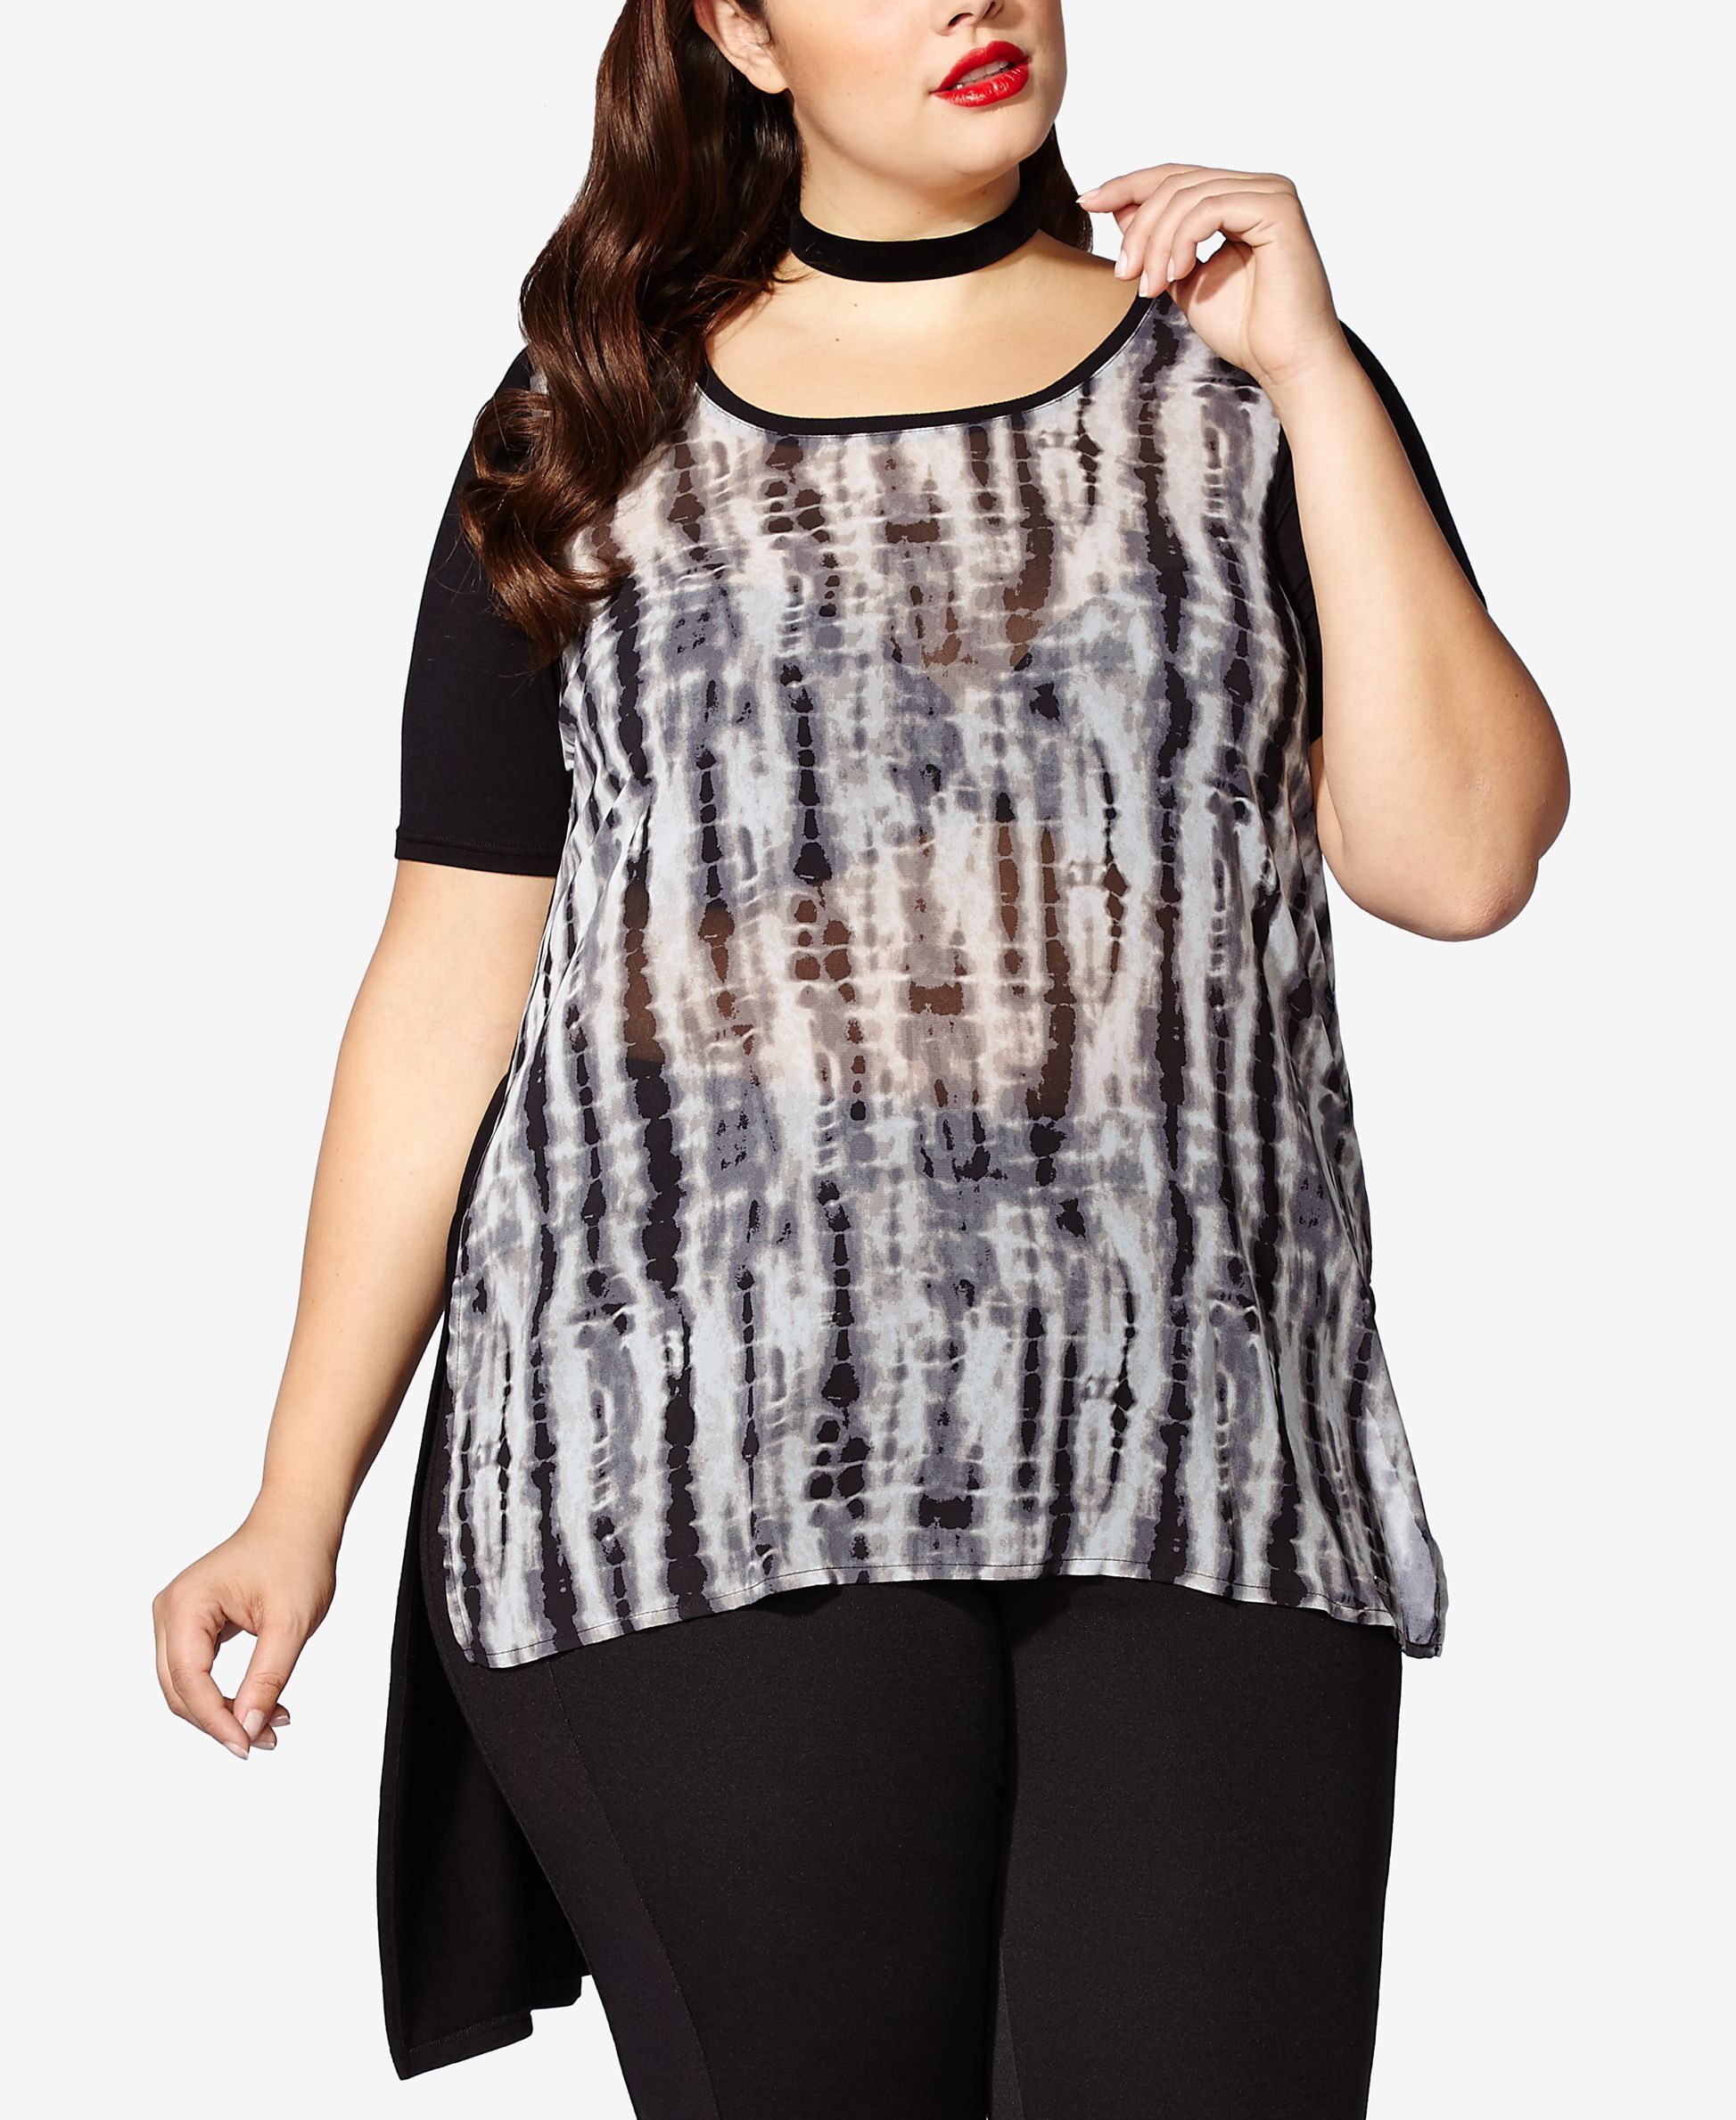 e4876e3dda8 Plus Size Sheer Sleeve Tops